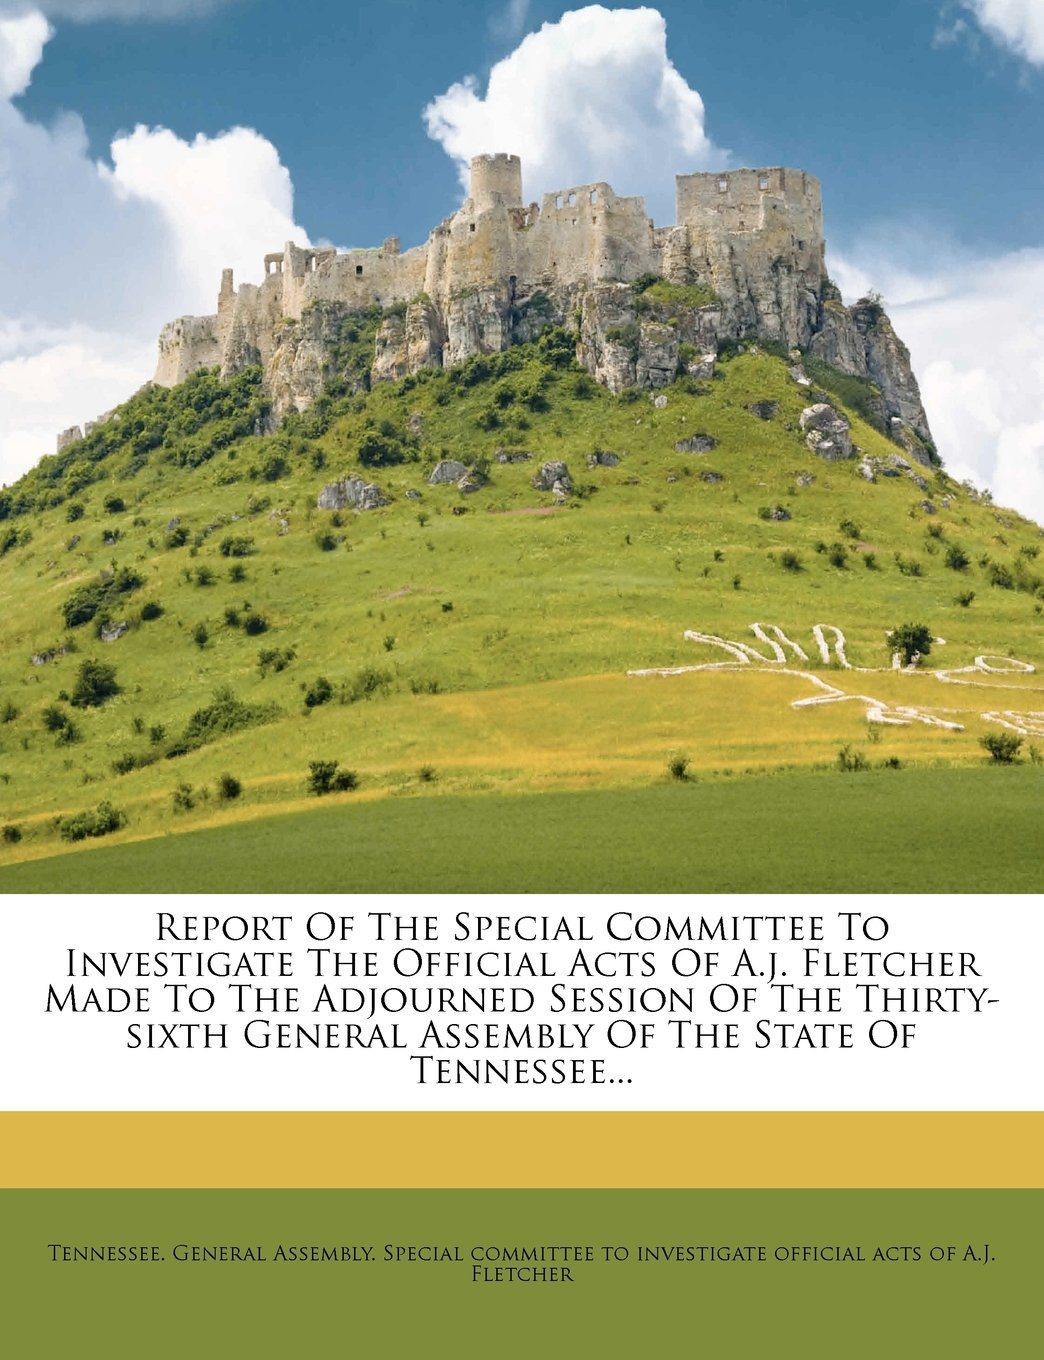 Report Of The Special Committee To Investigate The Official Acts Of A.j. Fletcher Made To The Adjourned Session Of The Thirty-sixth General Assembly Of The State Of Tennessee... PDF